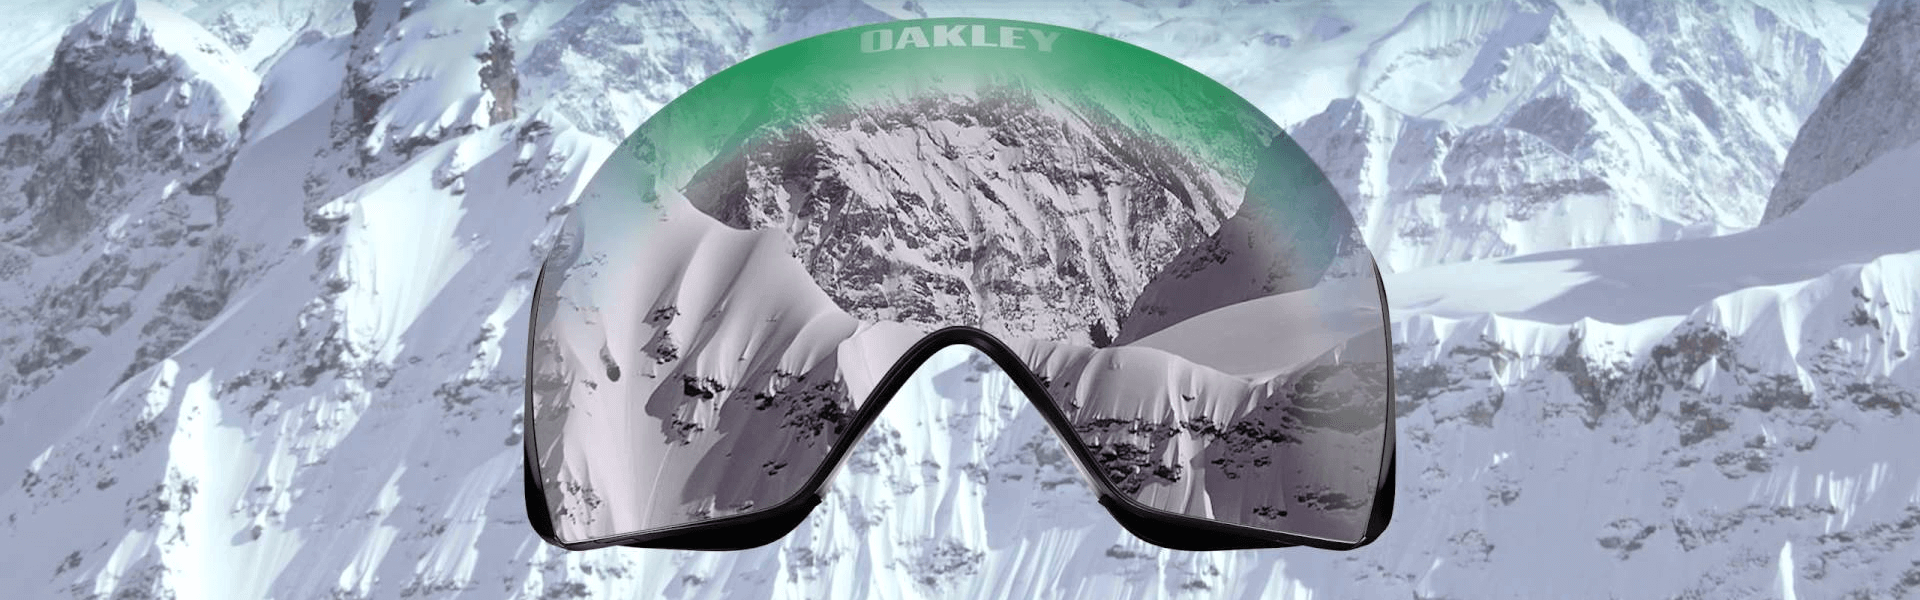 Oakley prizm goggles and lenses